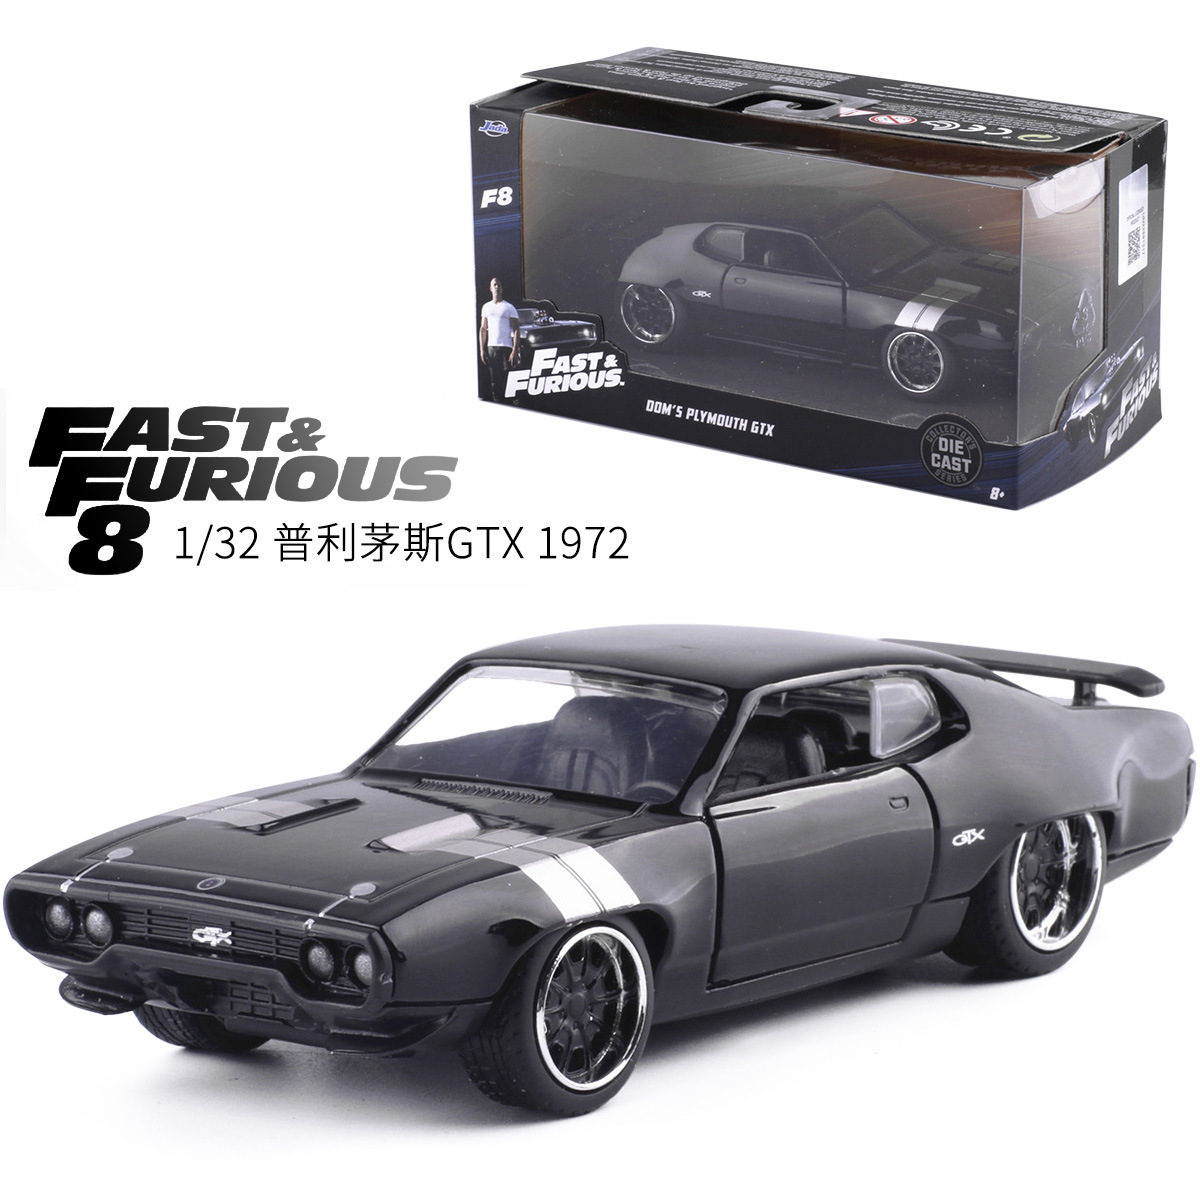 Jada Diecast 1:32 Fast And Furious Alloy Car 1972 Plymouth GTX Metal Classic Model Street Race Car For Children Gift Collection